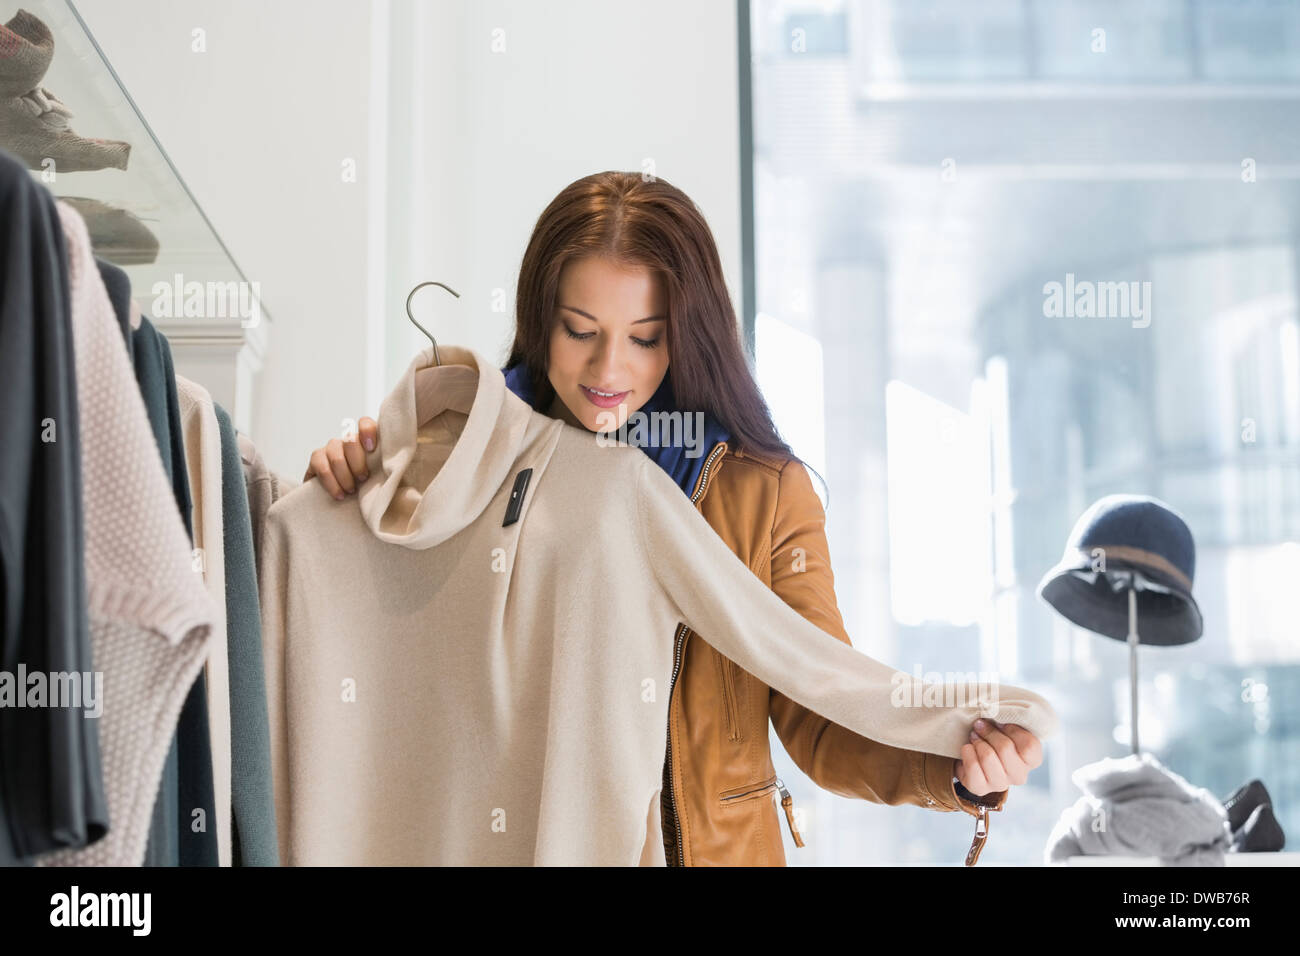 Young woman choosing sweater in store - Stock Image